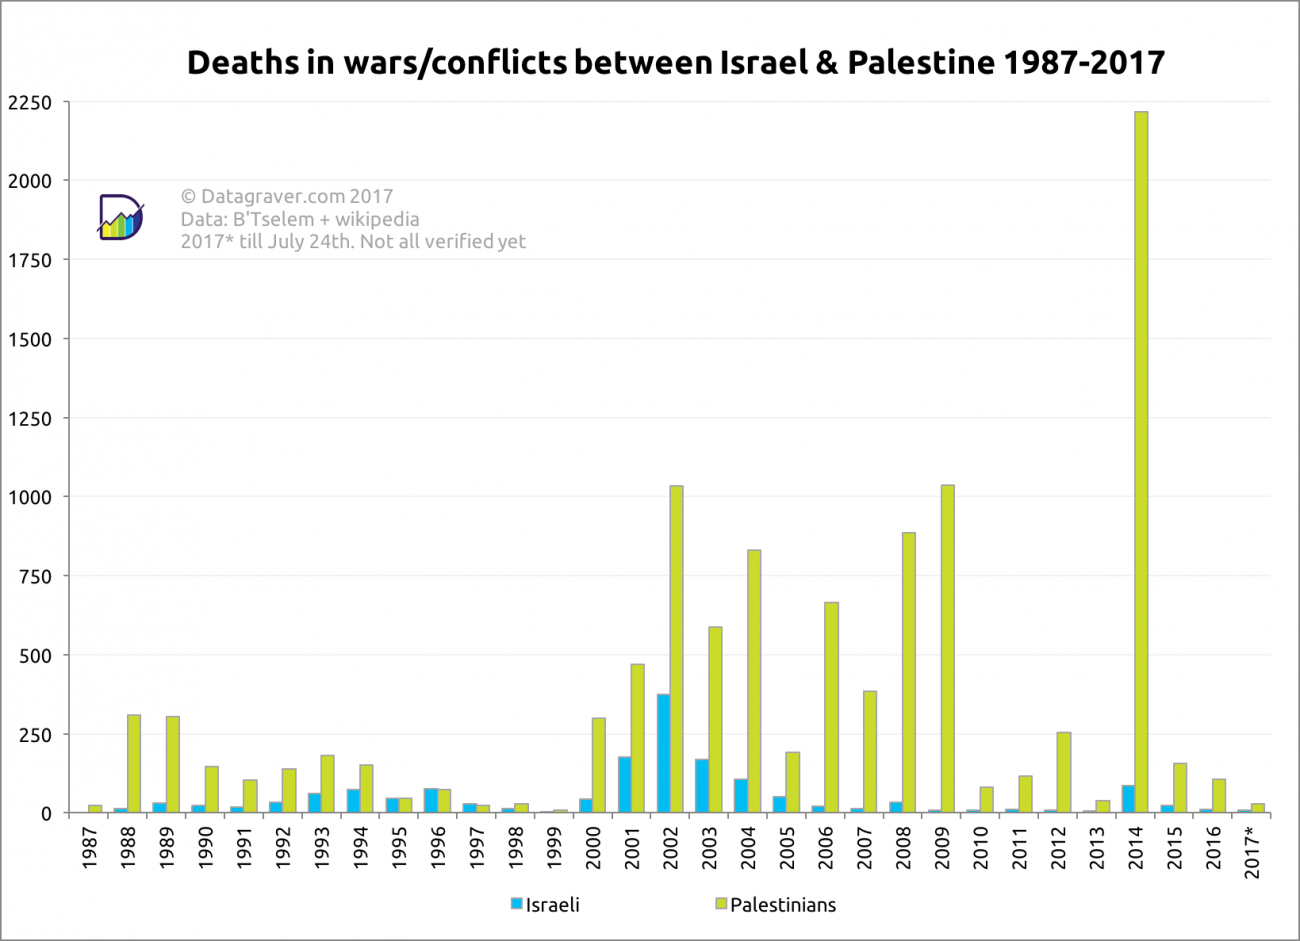 Number of deaths in conflicts and wars between Israel and